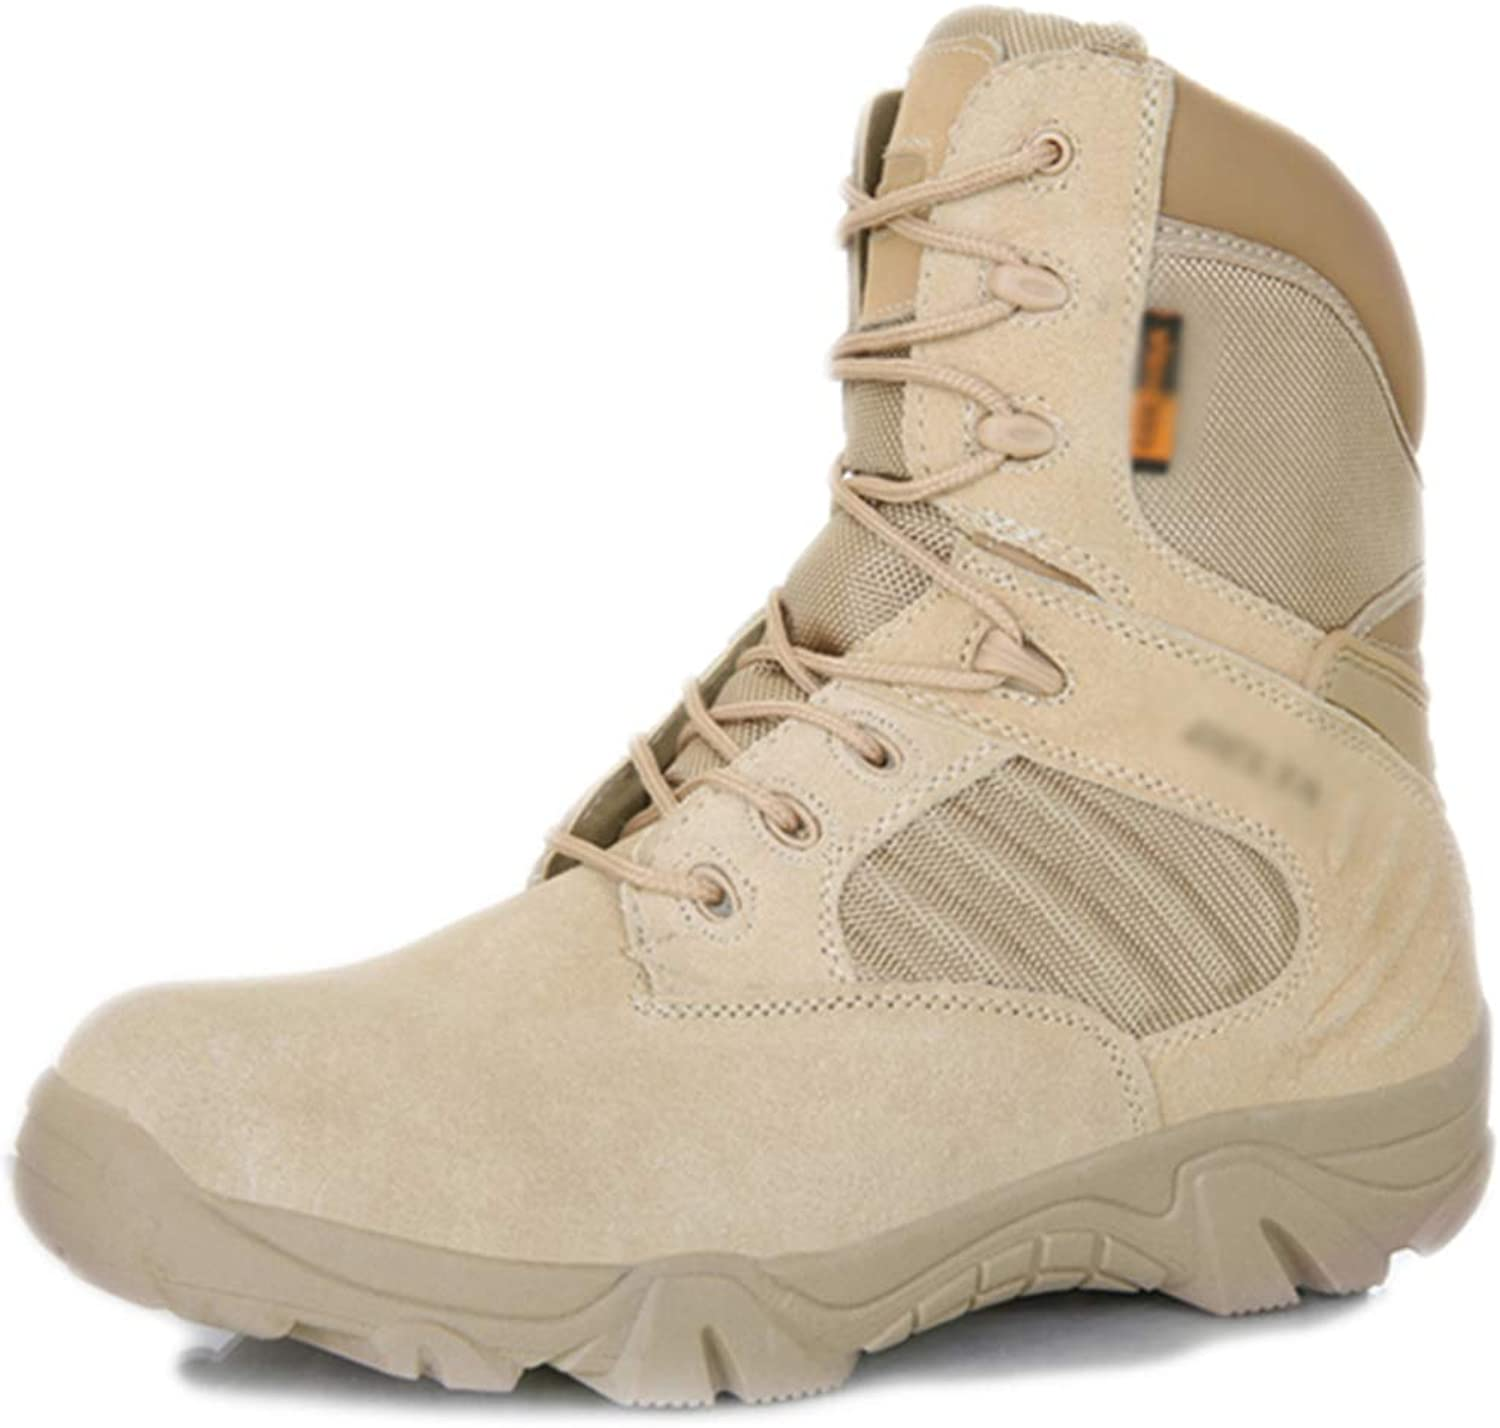 Mens High Top Delta Military Boots Special Forces Police Army Combat shoes Outdoor Desert Hiking Mountaineering Leather Lace Ups Footwear